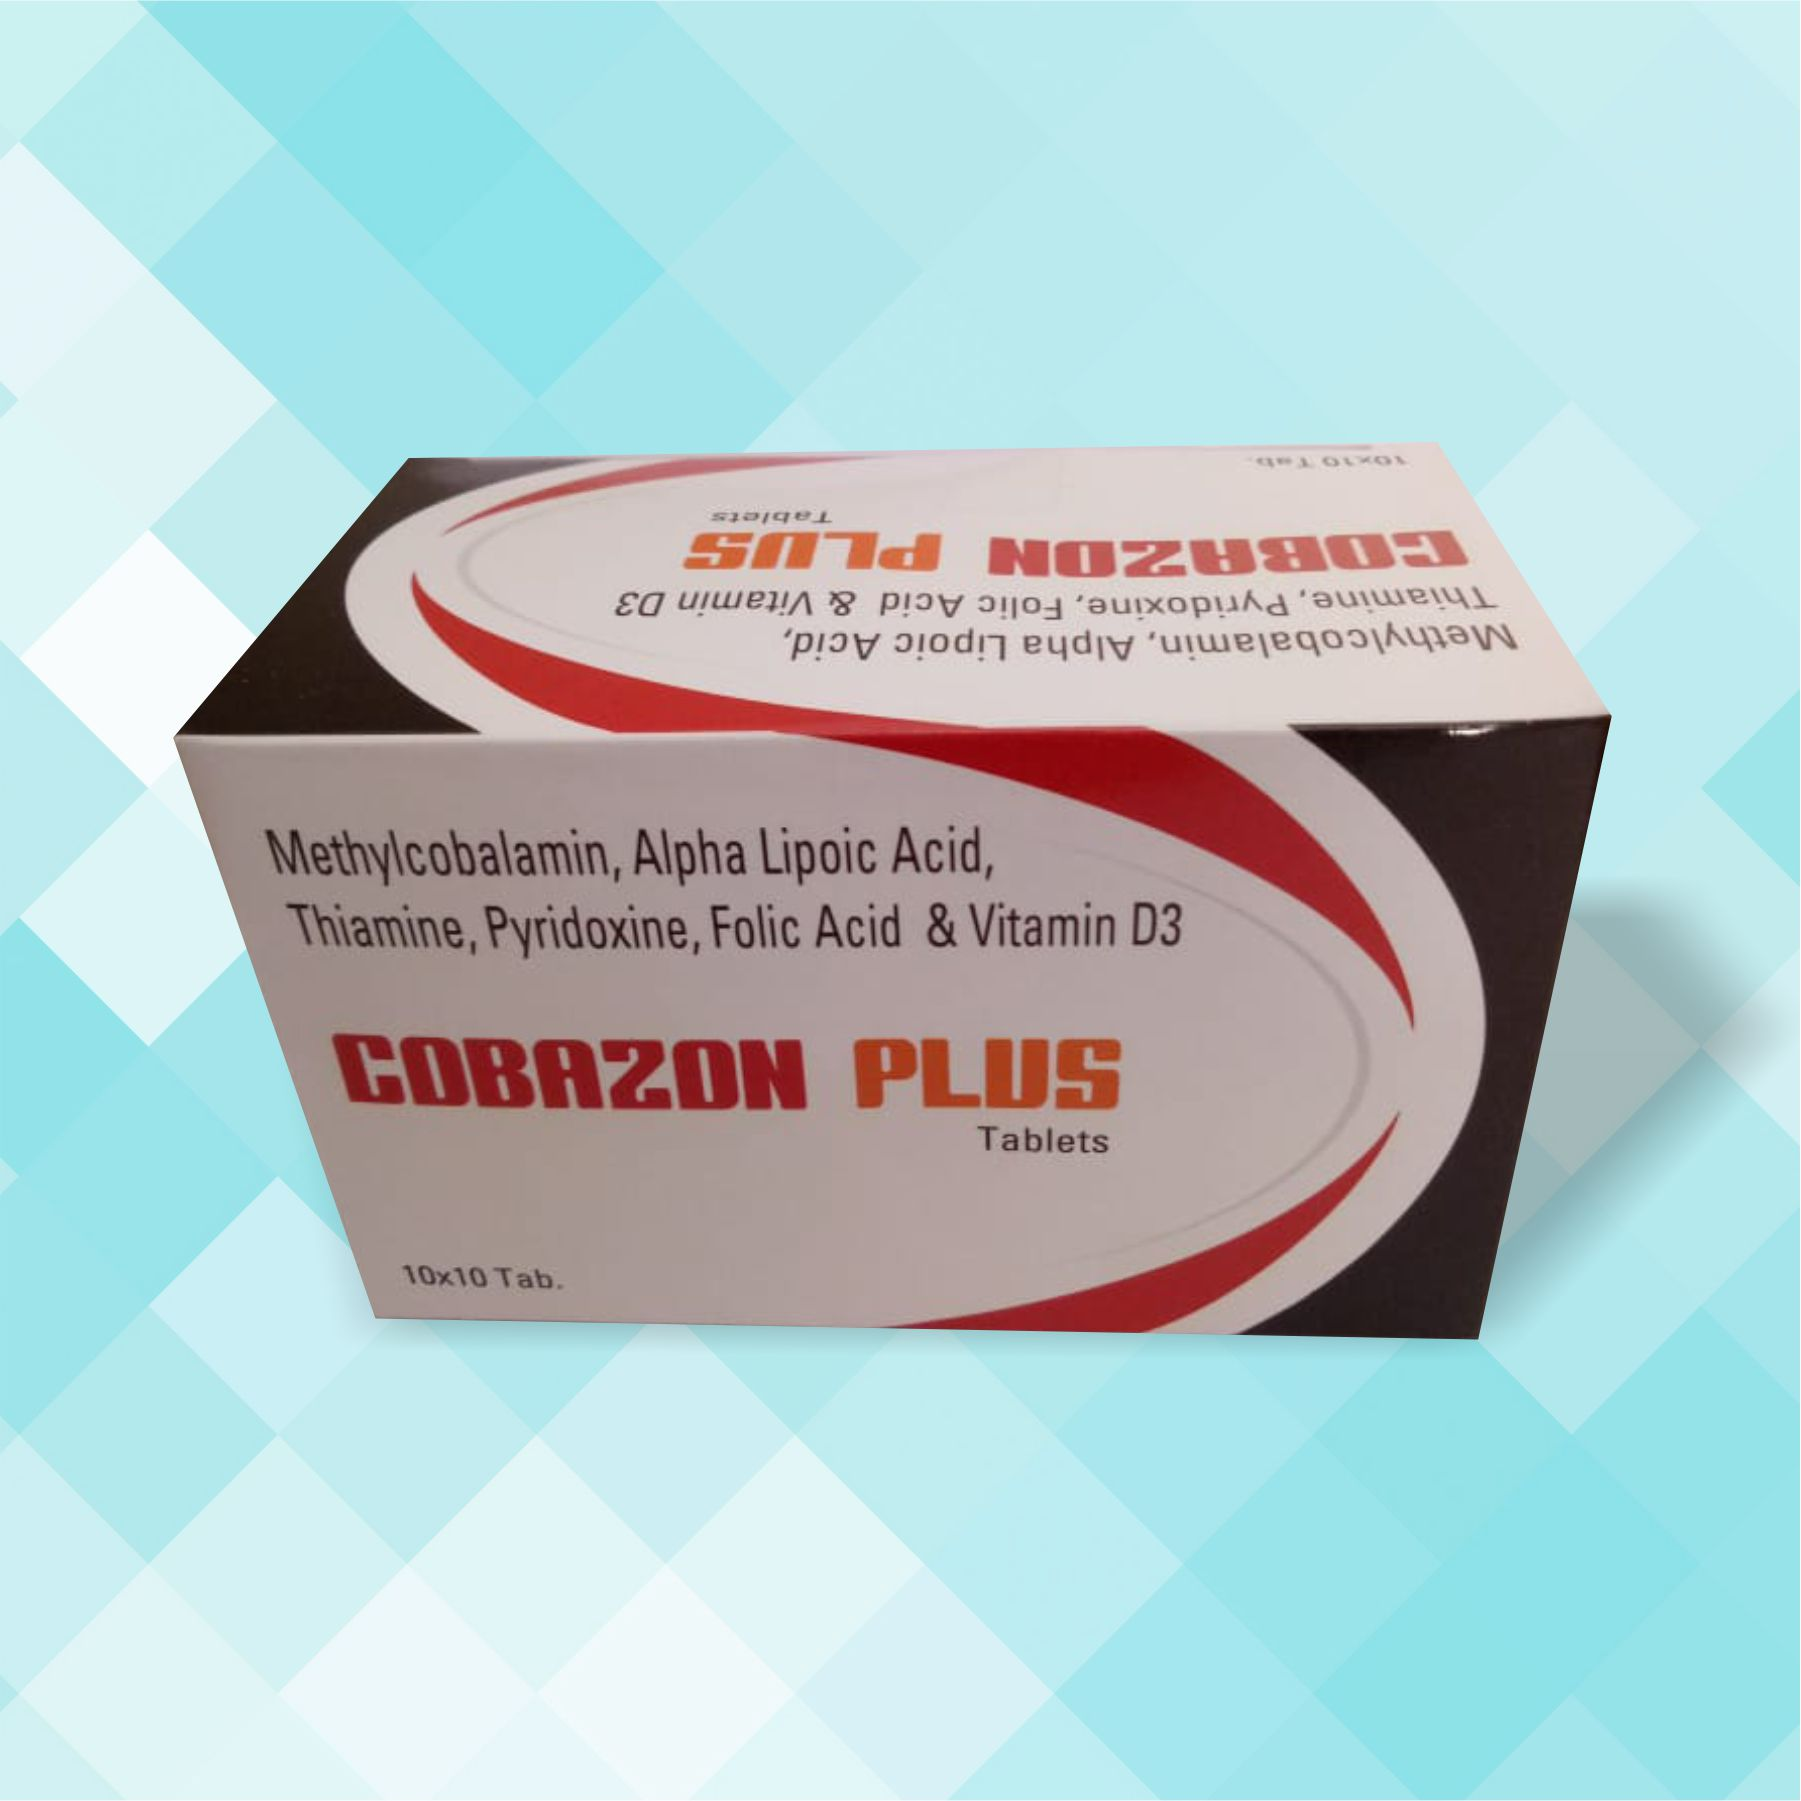 cobazon-plus-3270